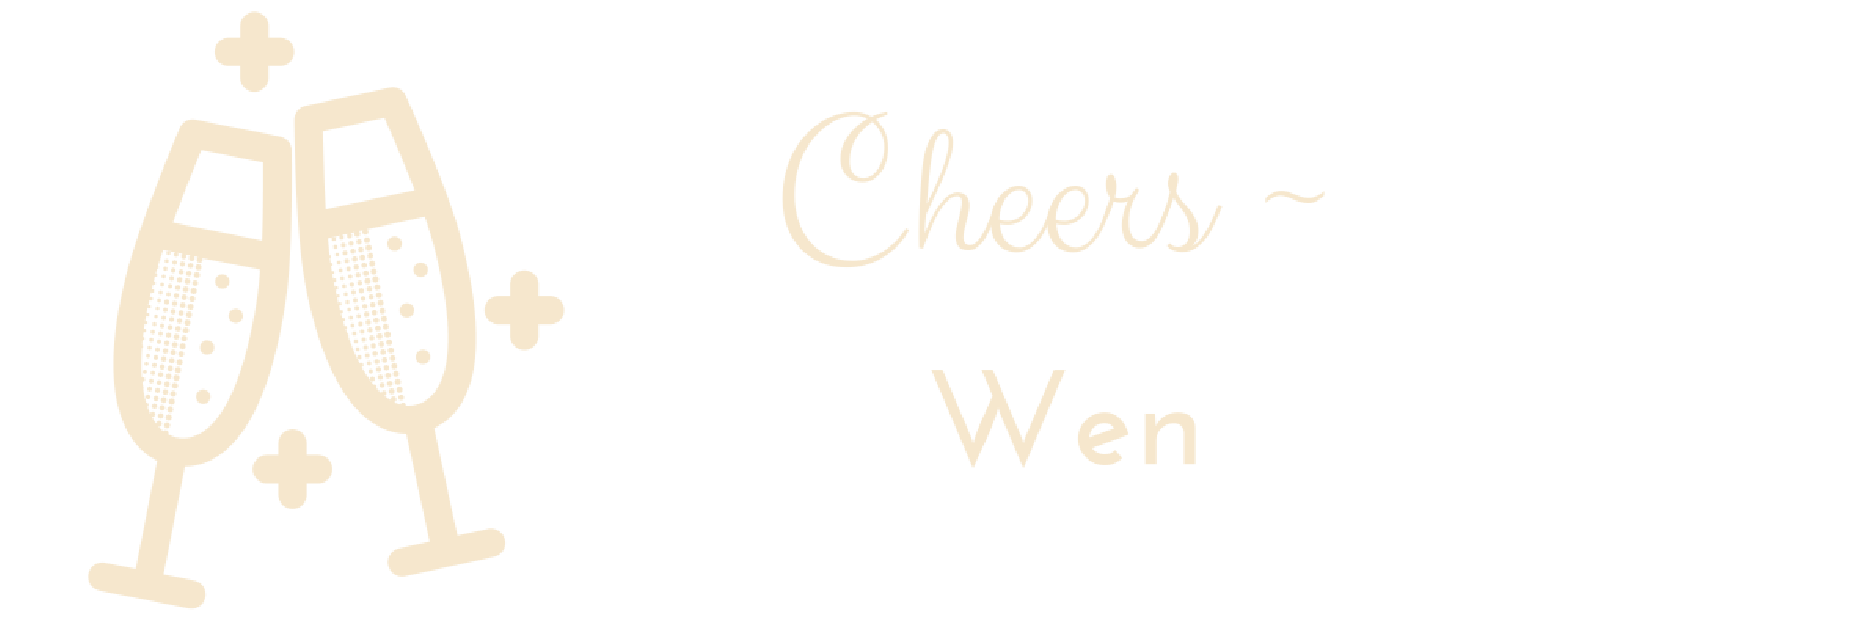 cheers-w